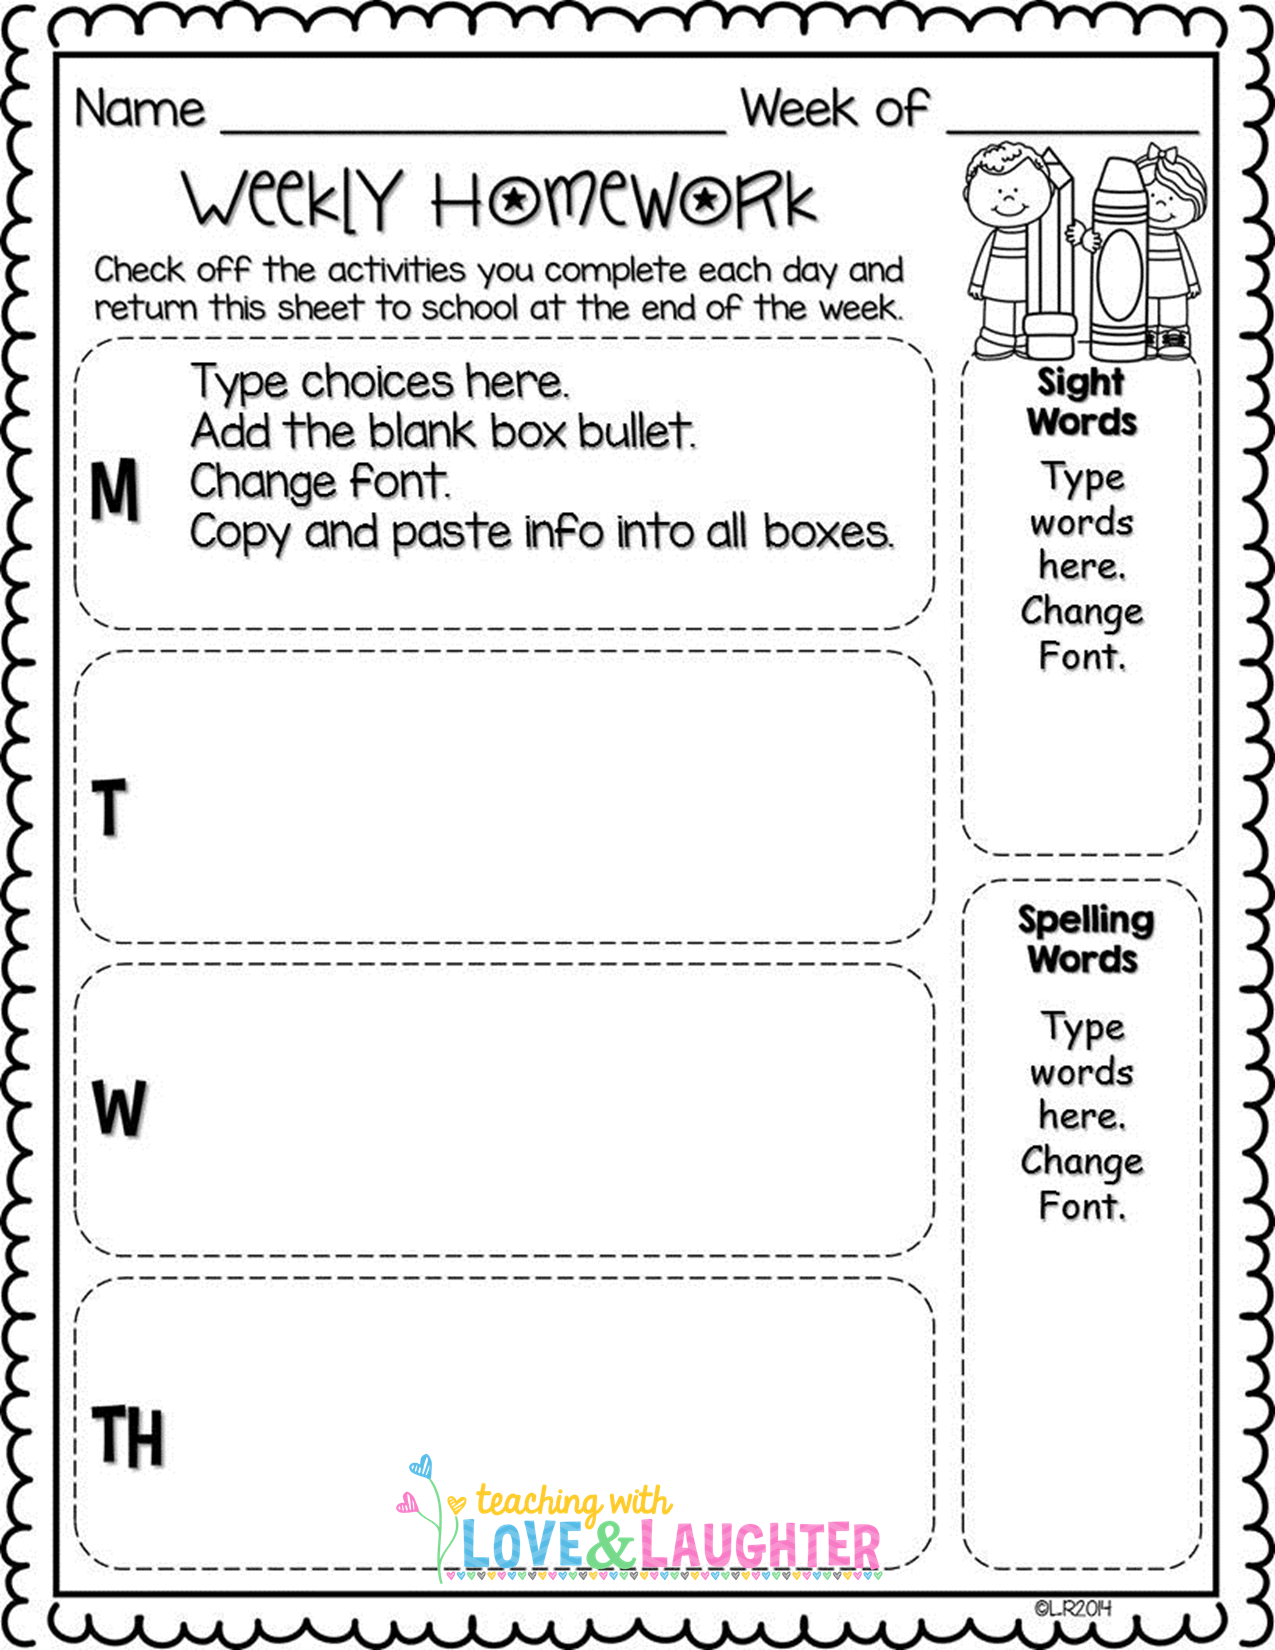 Editable Weekly Homework Checklists Compatible With First